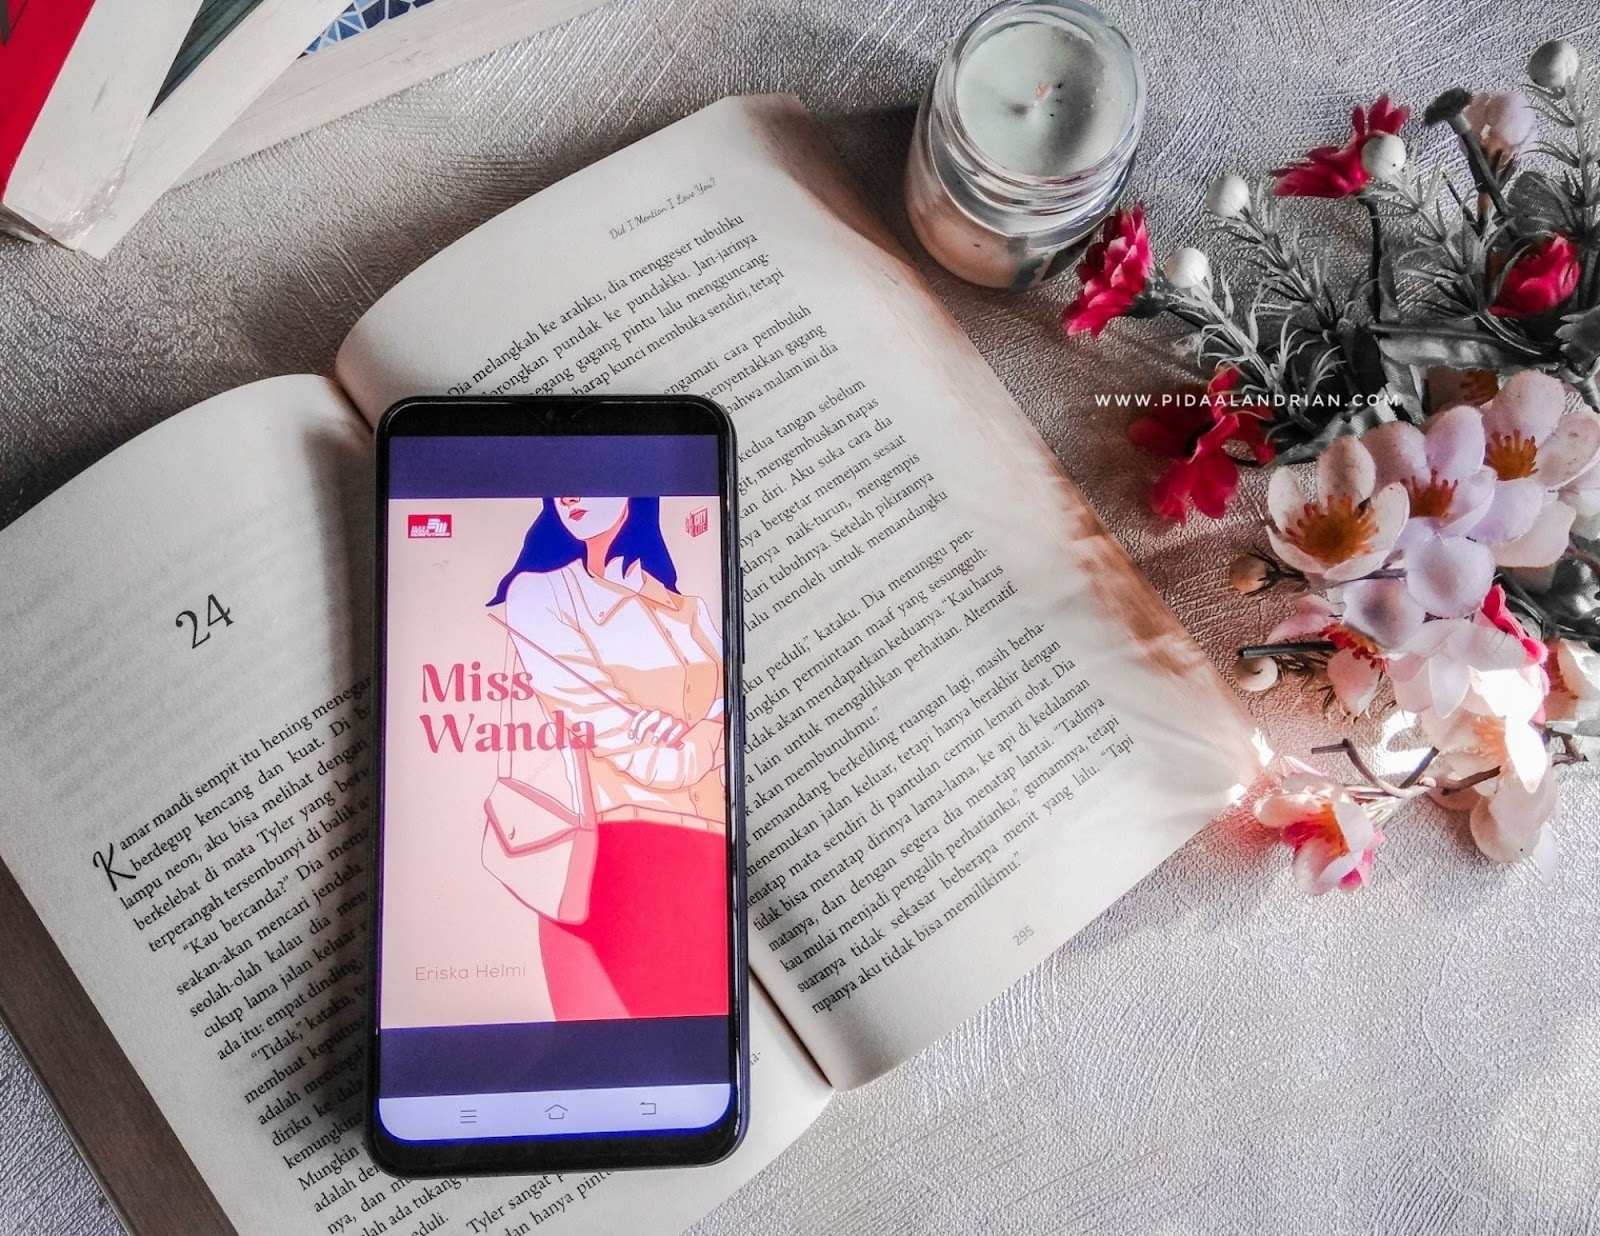 Book review Miss Wanda - Eriska Helmi